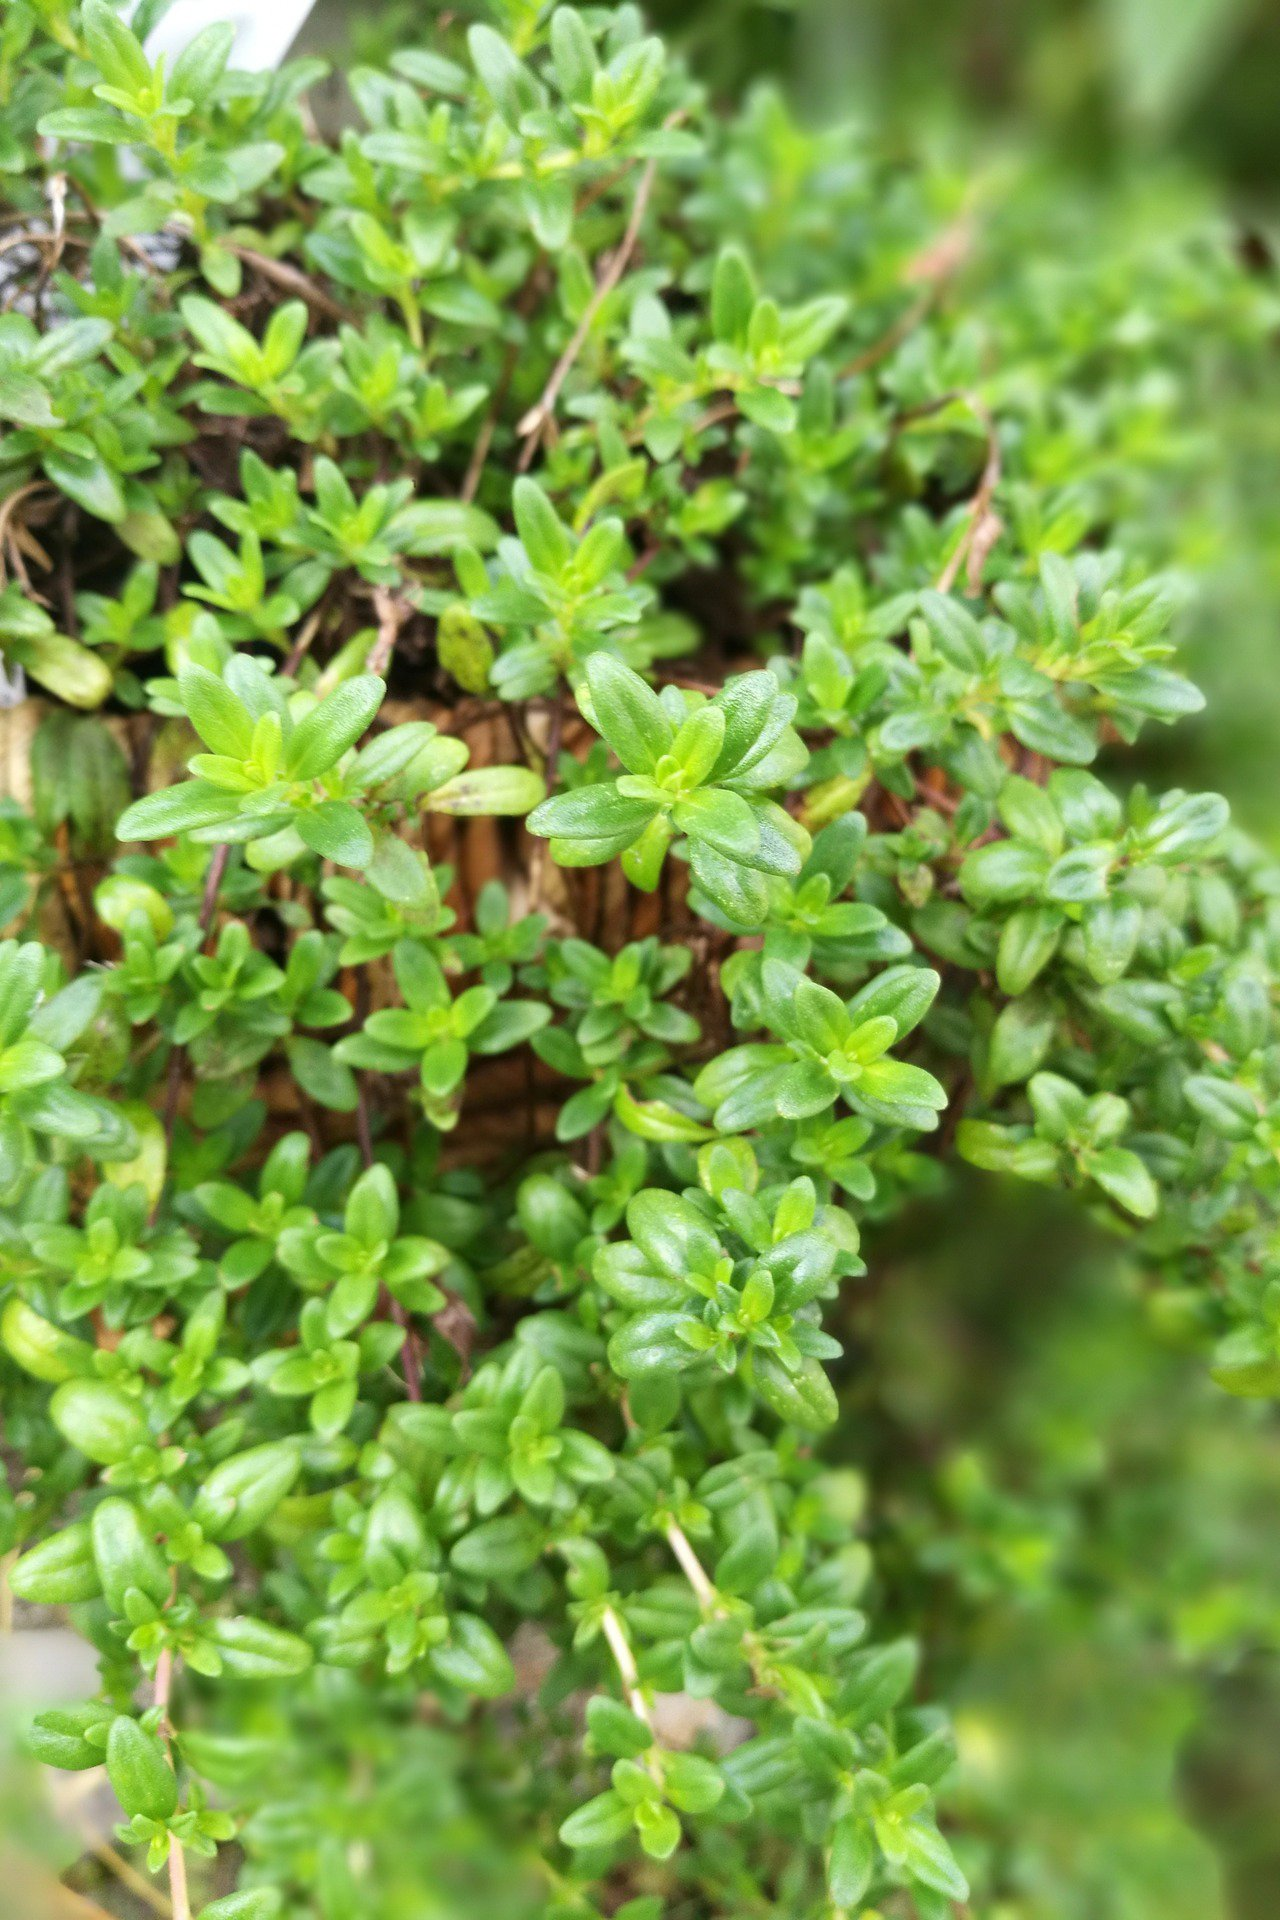 Thyme photo from pixabay.com